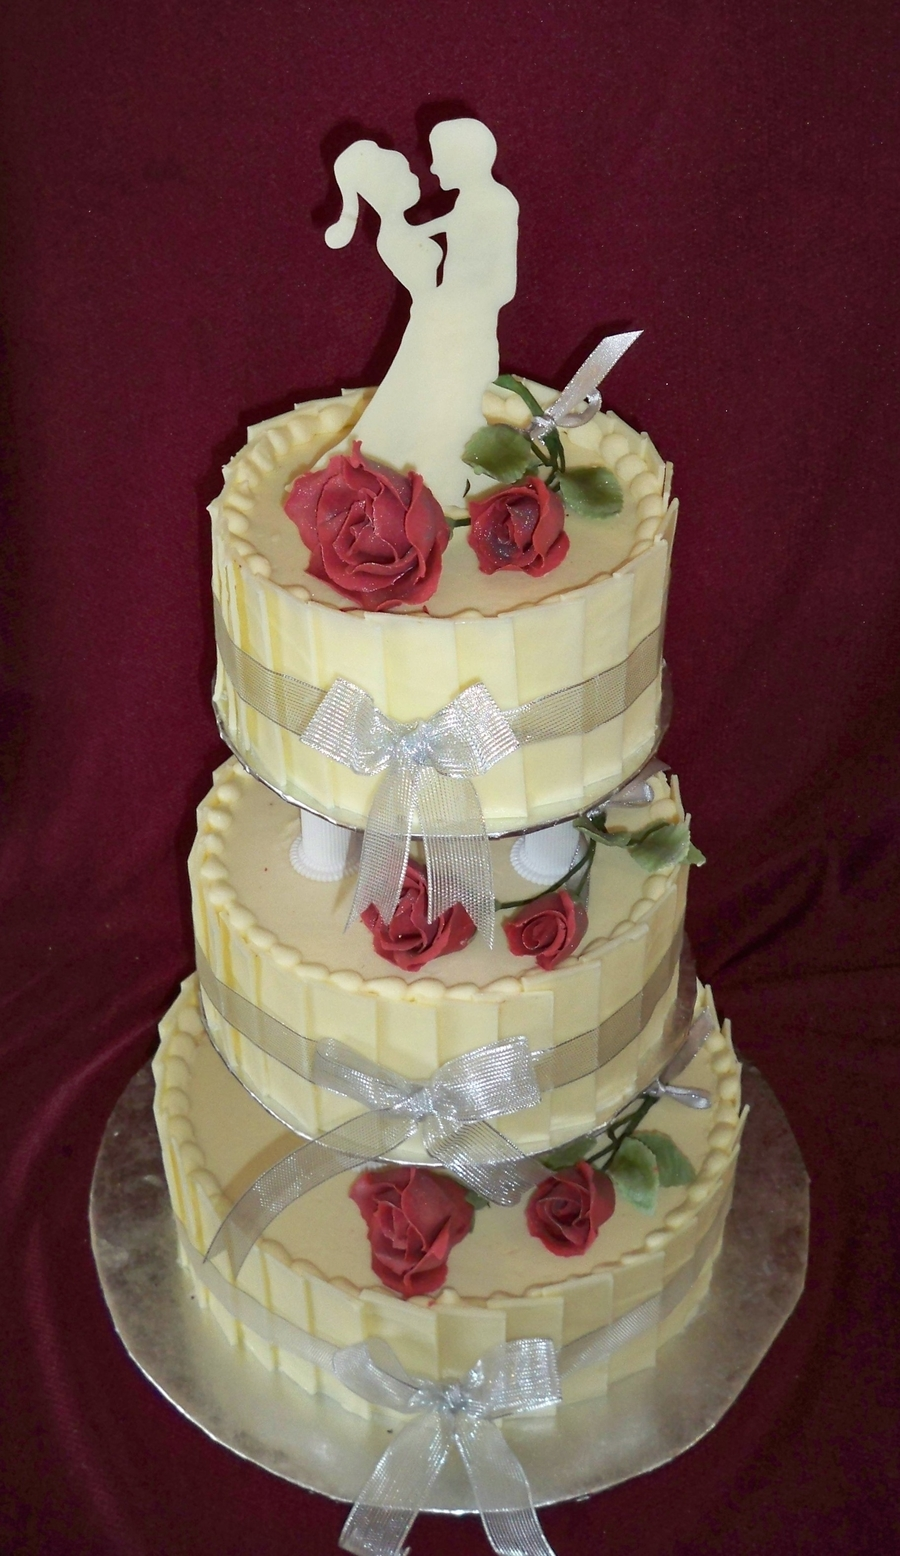 3 Tier White Chocolate Wedding Cake With Red Sugar Rose on Cake Central